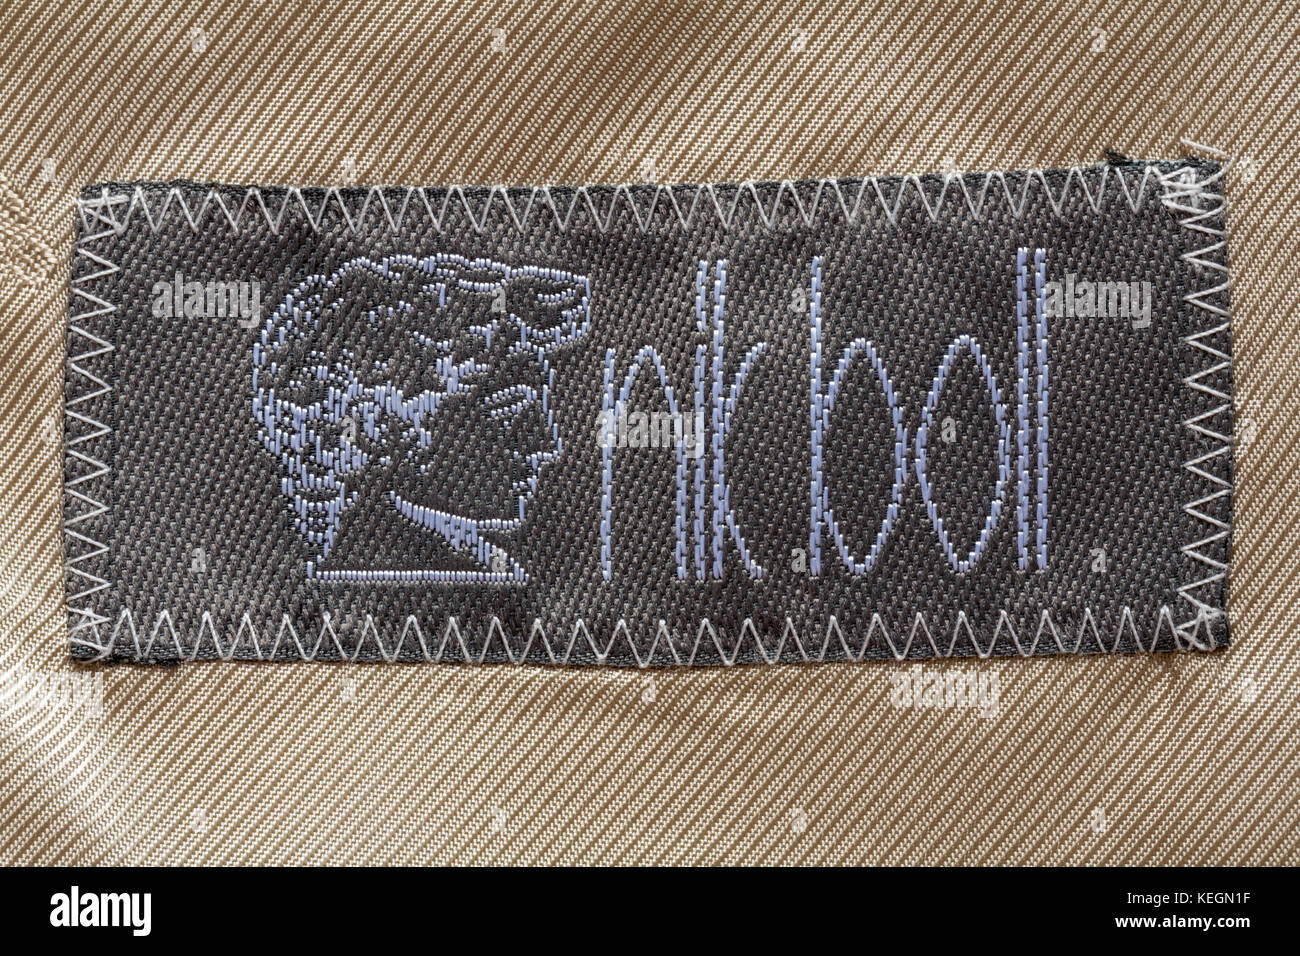 Nik Boll label in mans clothing - Stock Image